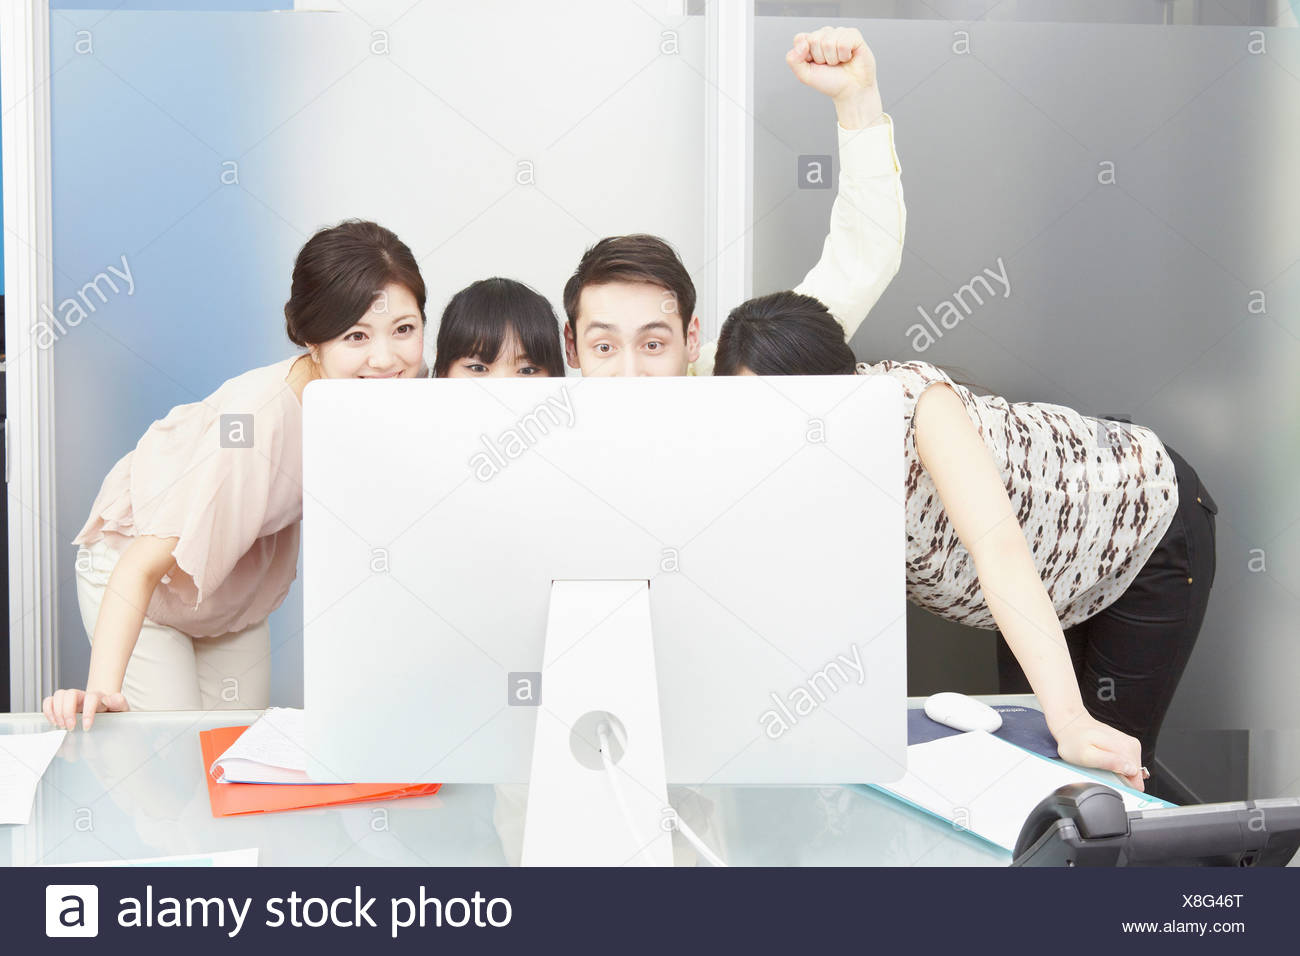 Colleagues looking at computer monitor, man punching the air - Stock Image